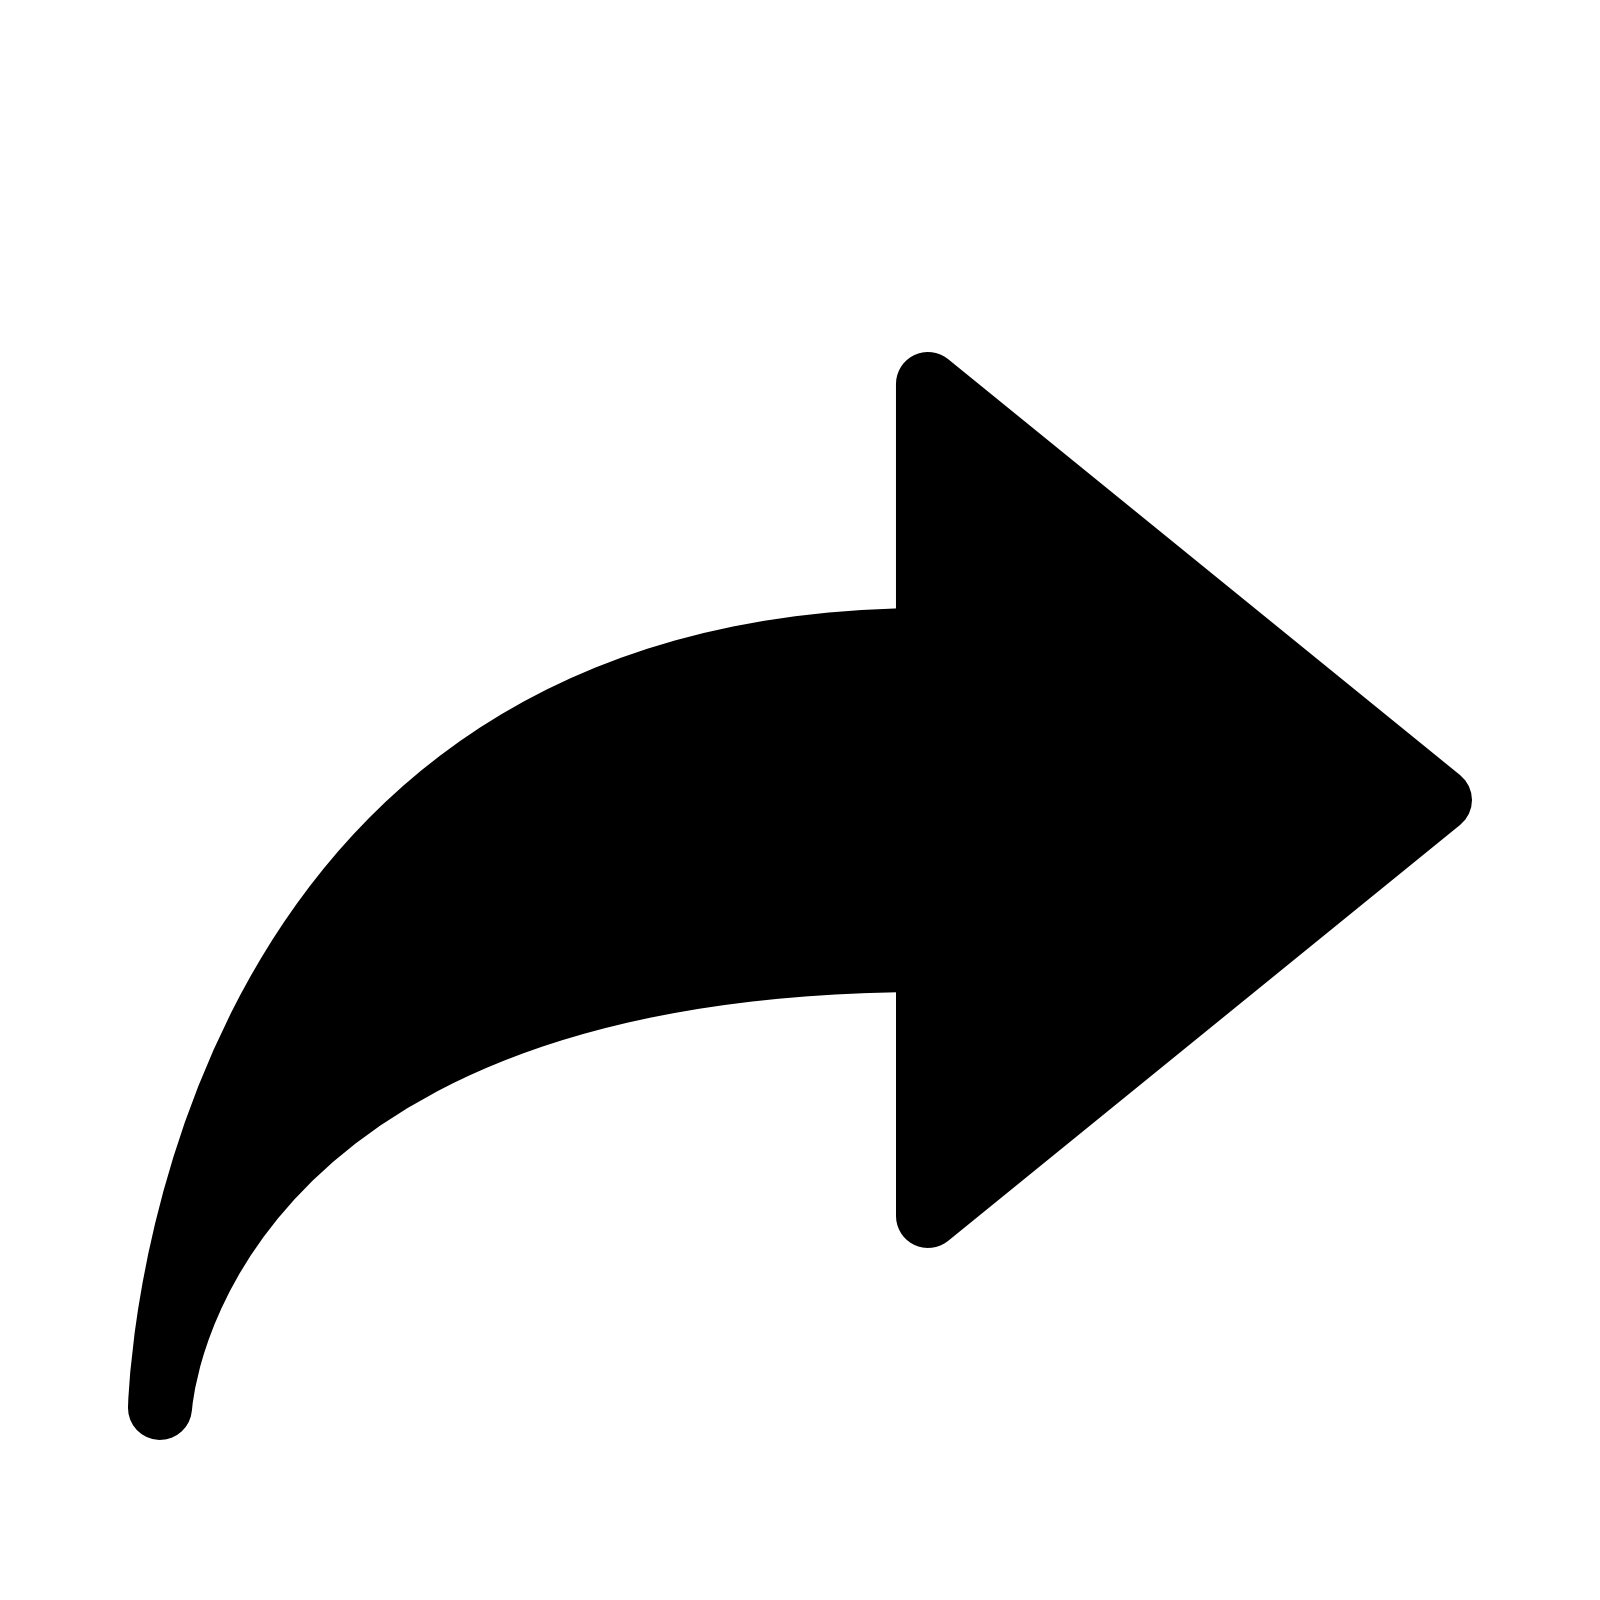 White arrow icon png